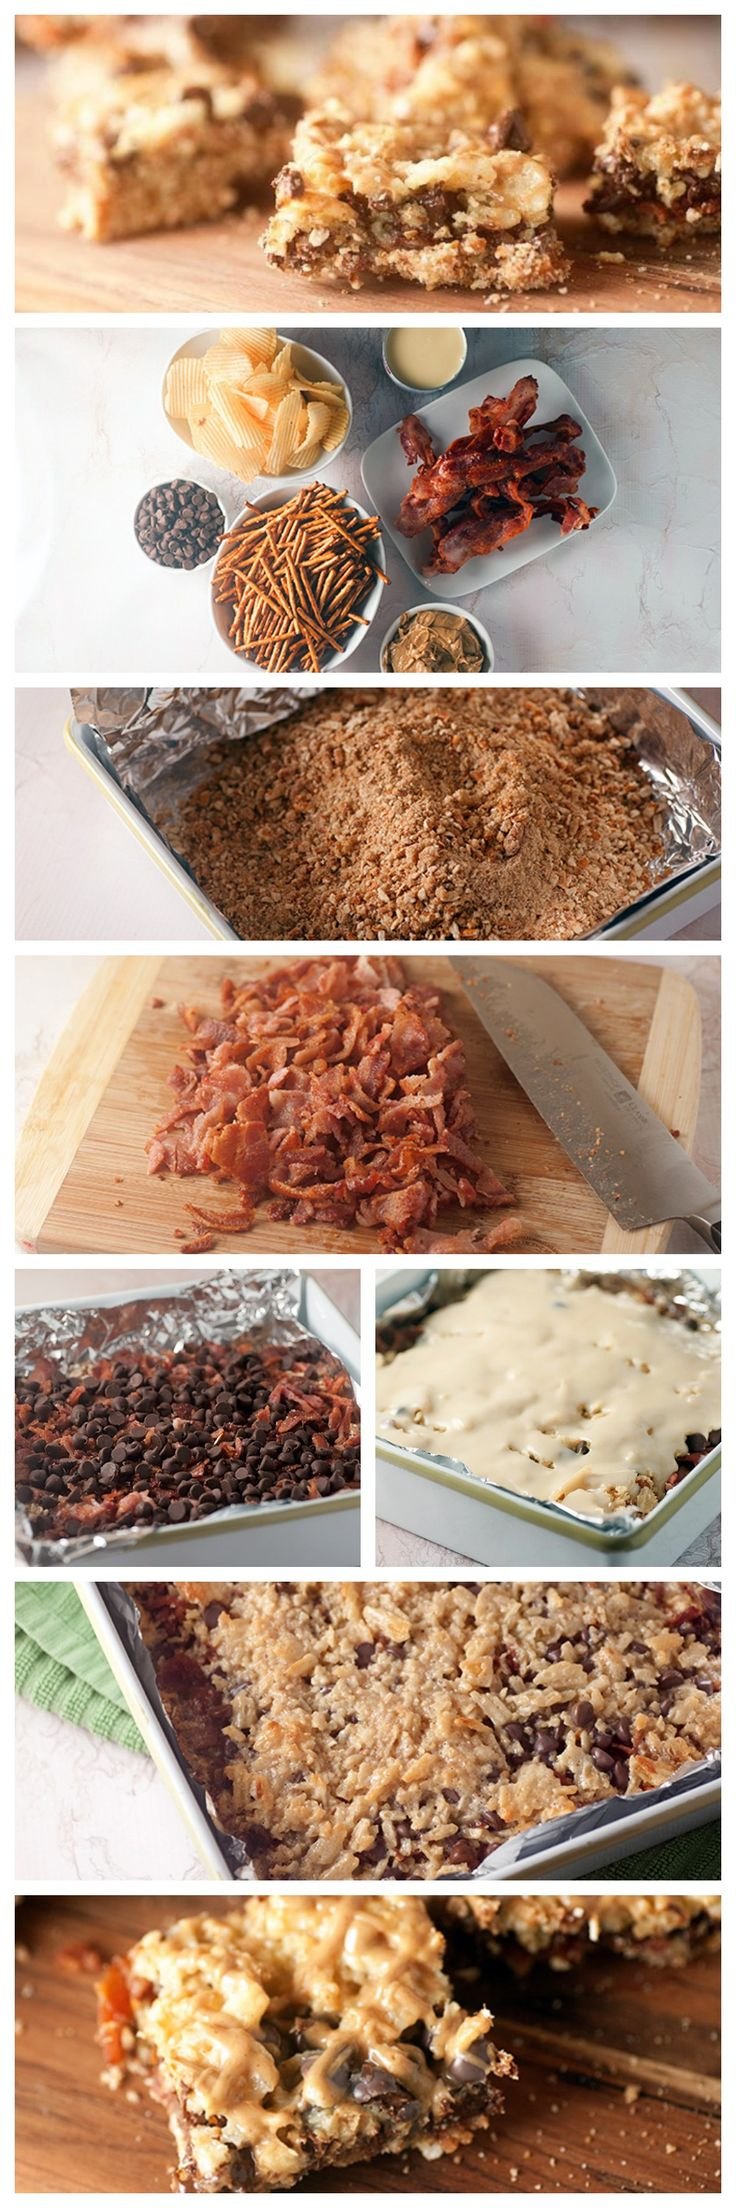 Bacon Chocolate Couch Potato Bars #bacon #chocolate